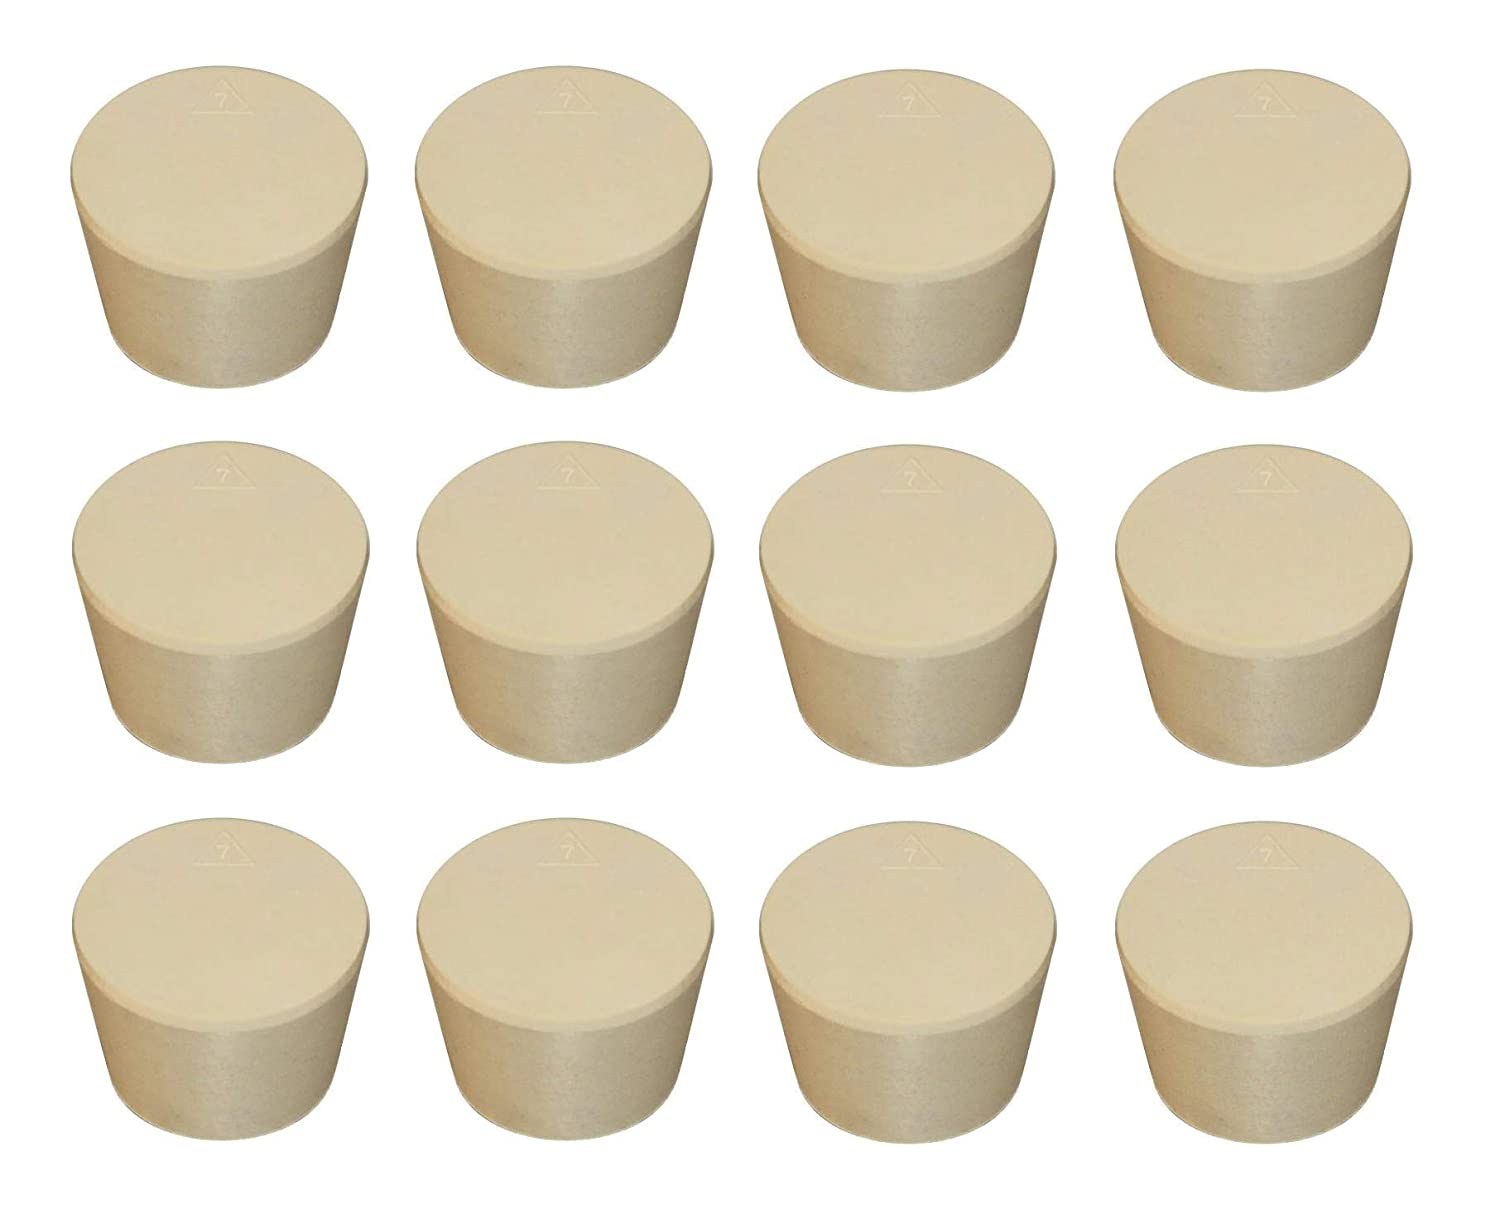 12 Pack #7 Solid Rubber STOPPERS Tapered Bung for Corking Home Brewing Glass Carboys